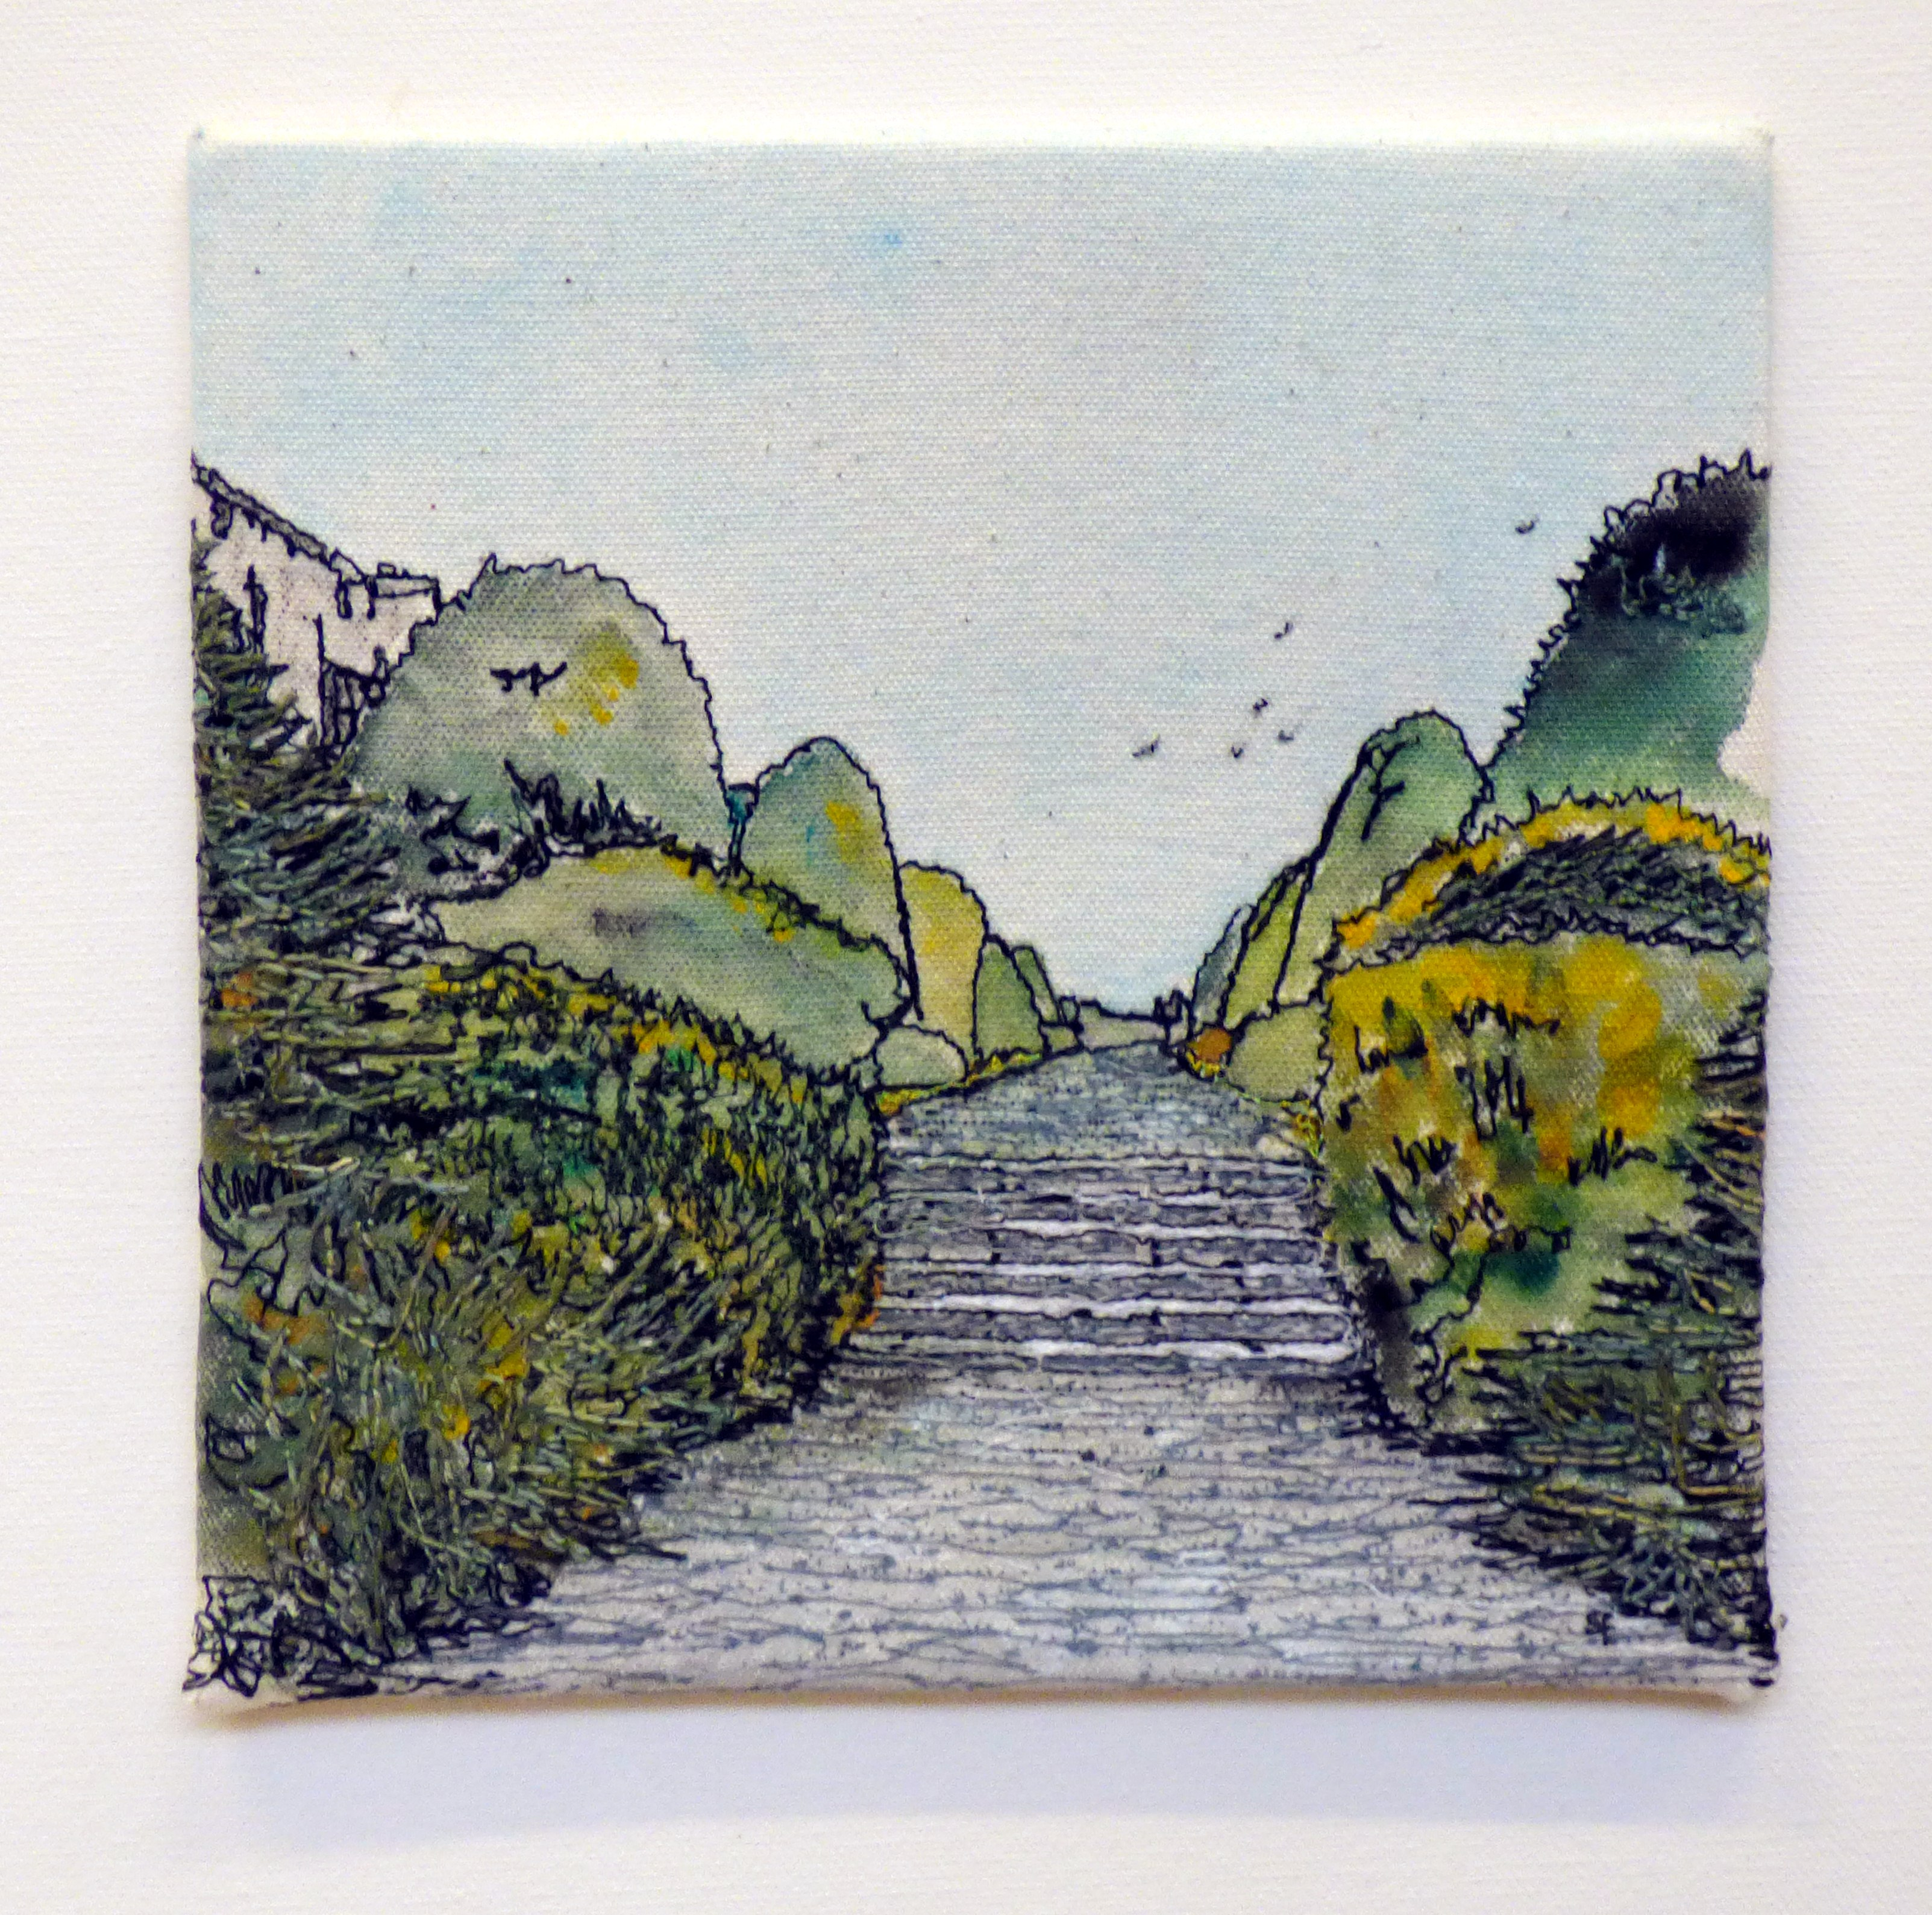 ALONG THE PATH by Sheila Foggin, from a photo at Chirk Castle